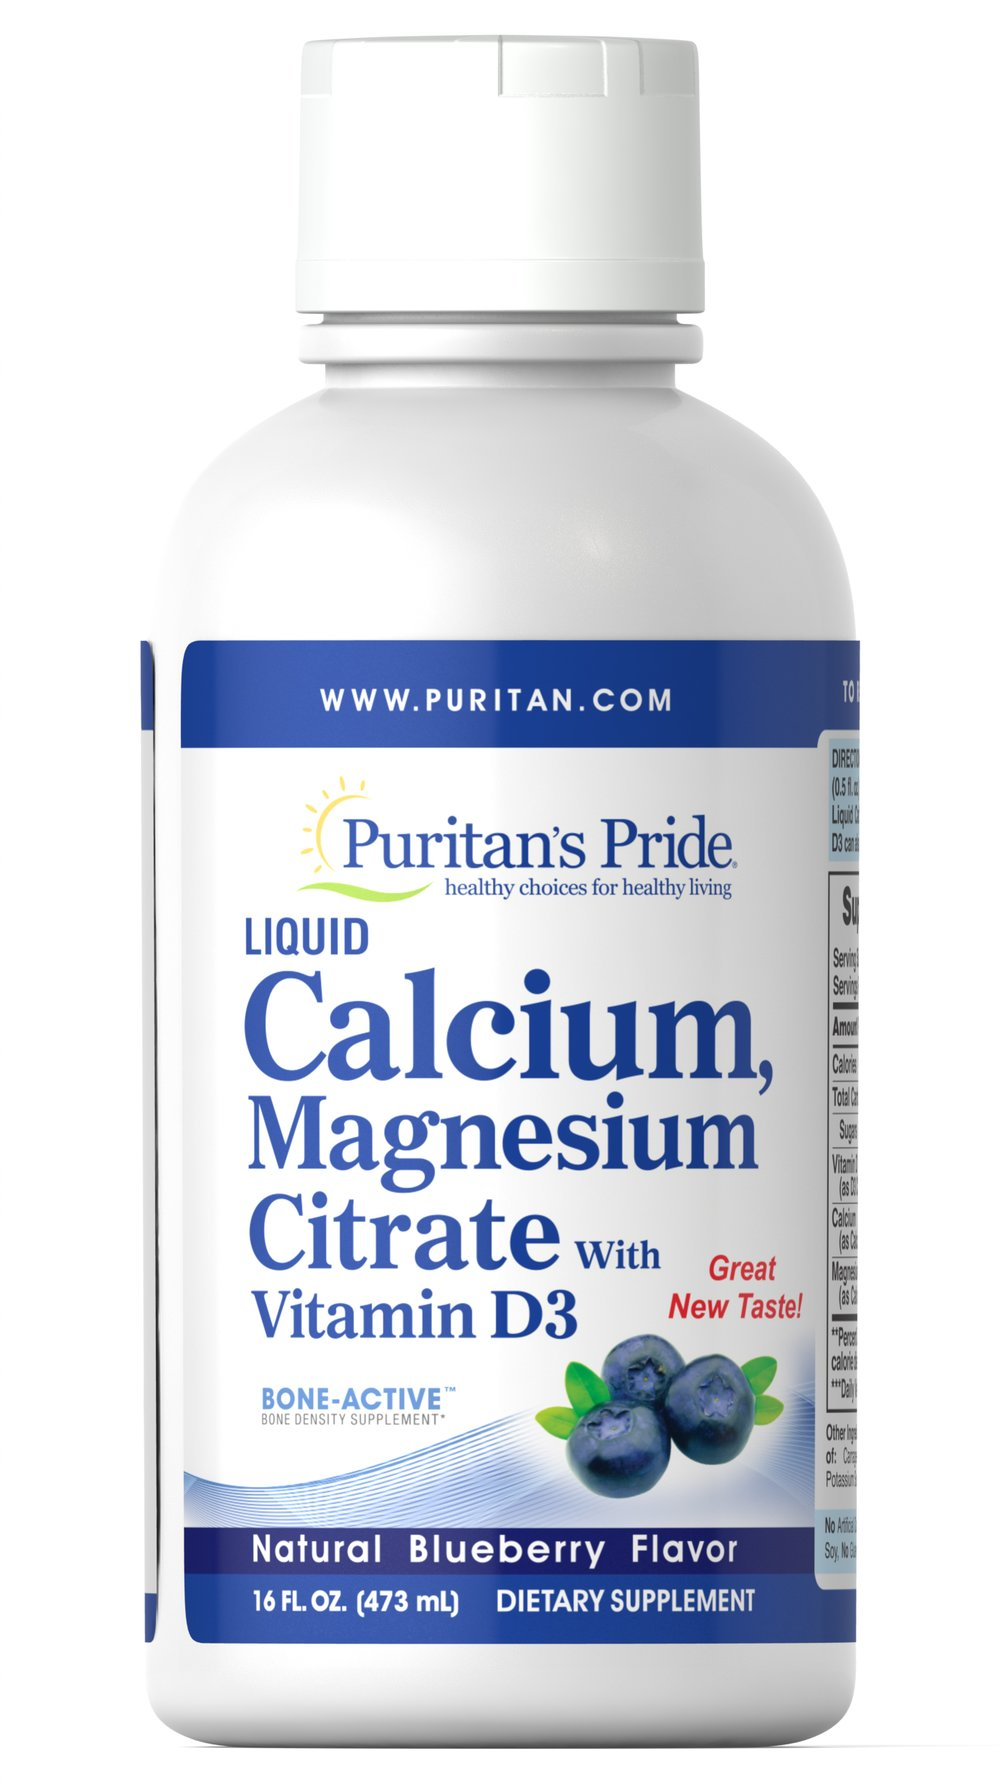 Liquid Calcium Magnesium with Vitamin D3 Blueberry <p>Promote Bone Health with Our Delicious Liquid Formulas**</p><p>Finally! The ability to promote bone health in an easy liquid formula!**</p><p>Our Liquid Calcium Magnesium with Vitamin D3 provides three vital minerals that work synergistically to promote healthy bones.** Calcium supports bone strength, while Magnesium is essential for bone structure and the mineralization of bone.** Vitamin D helps develop strong